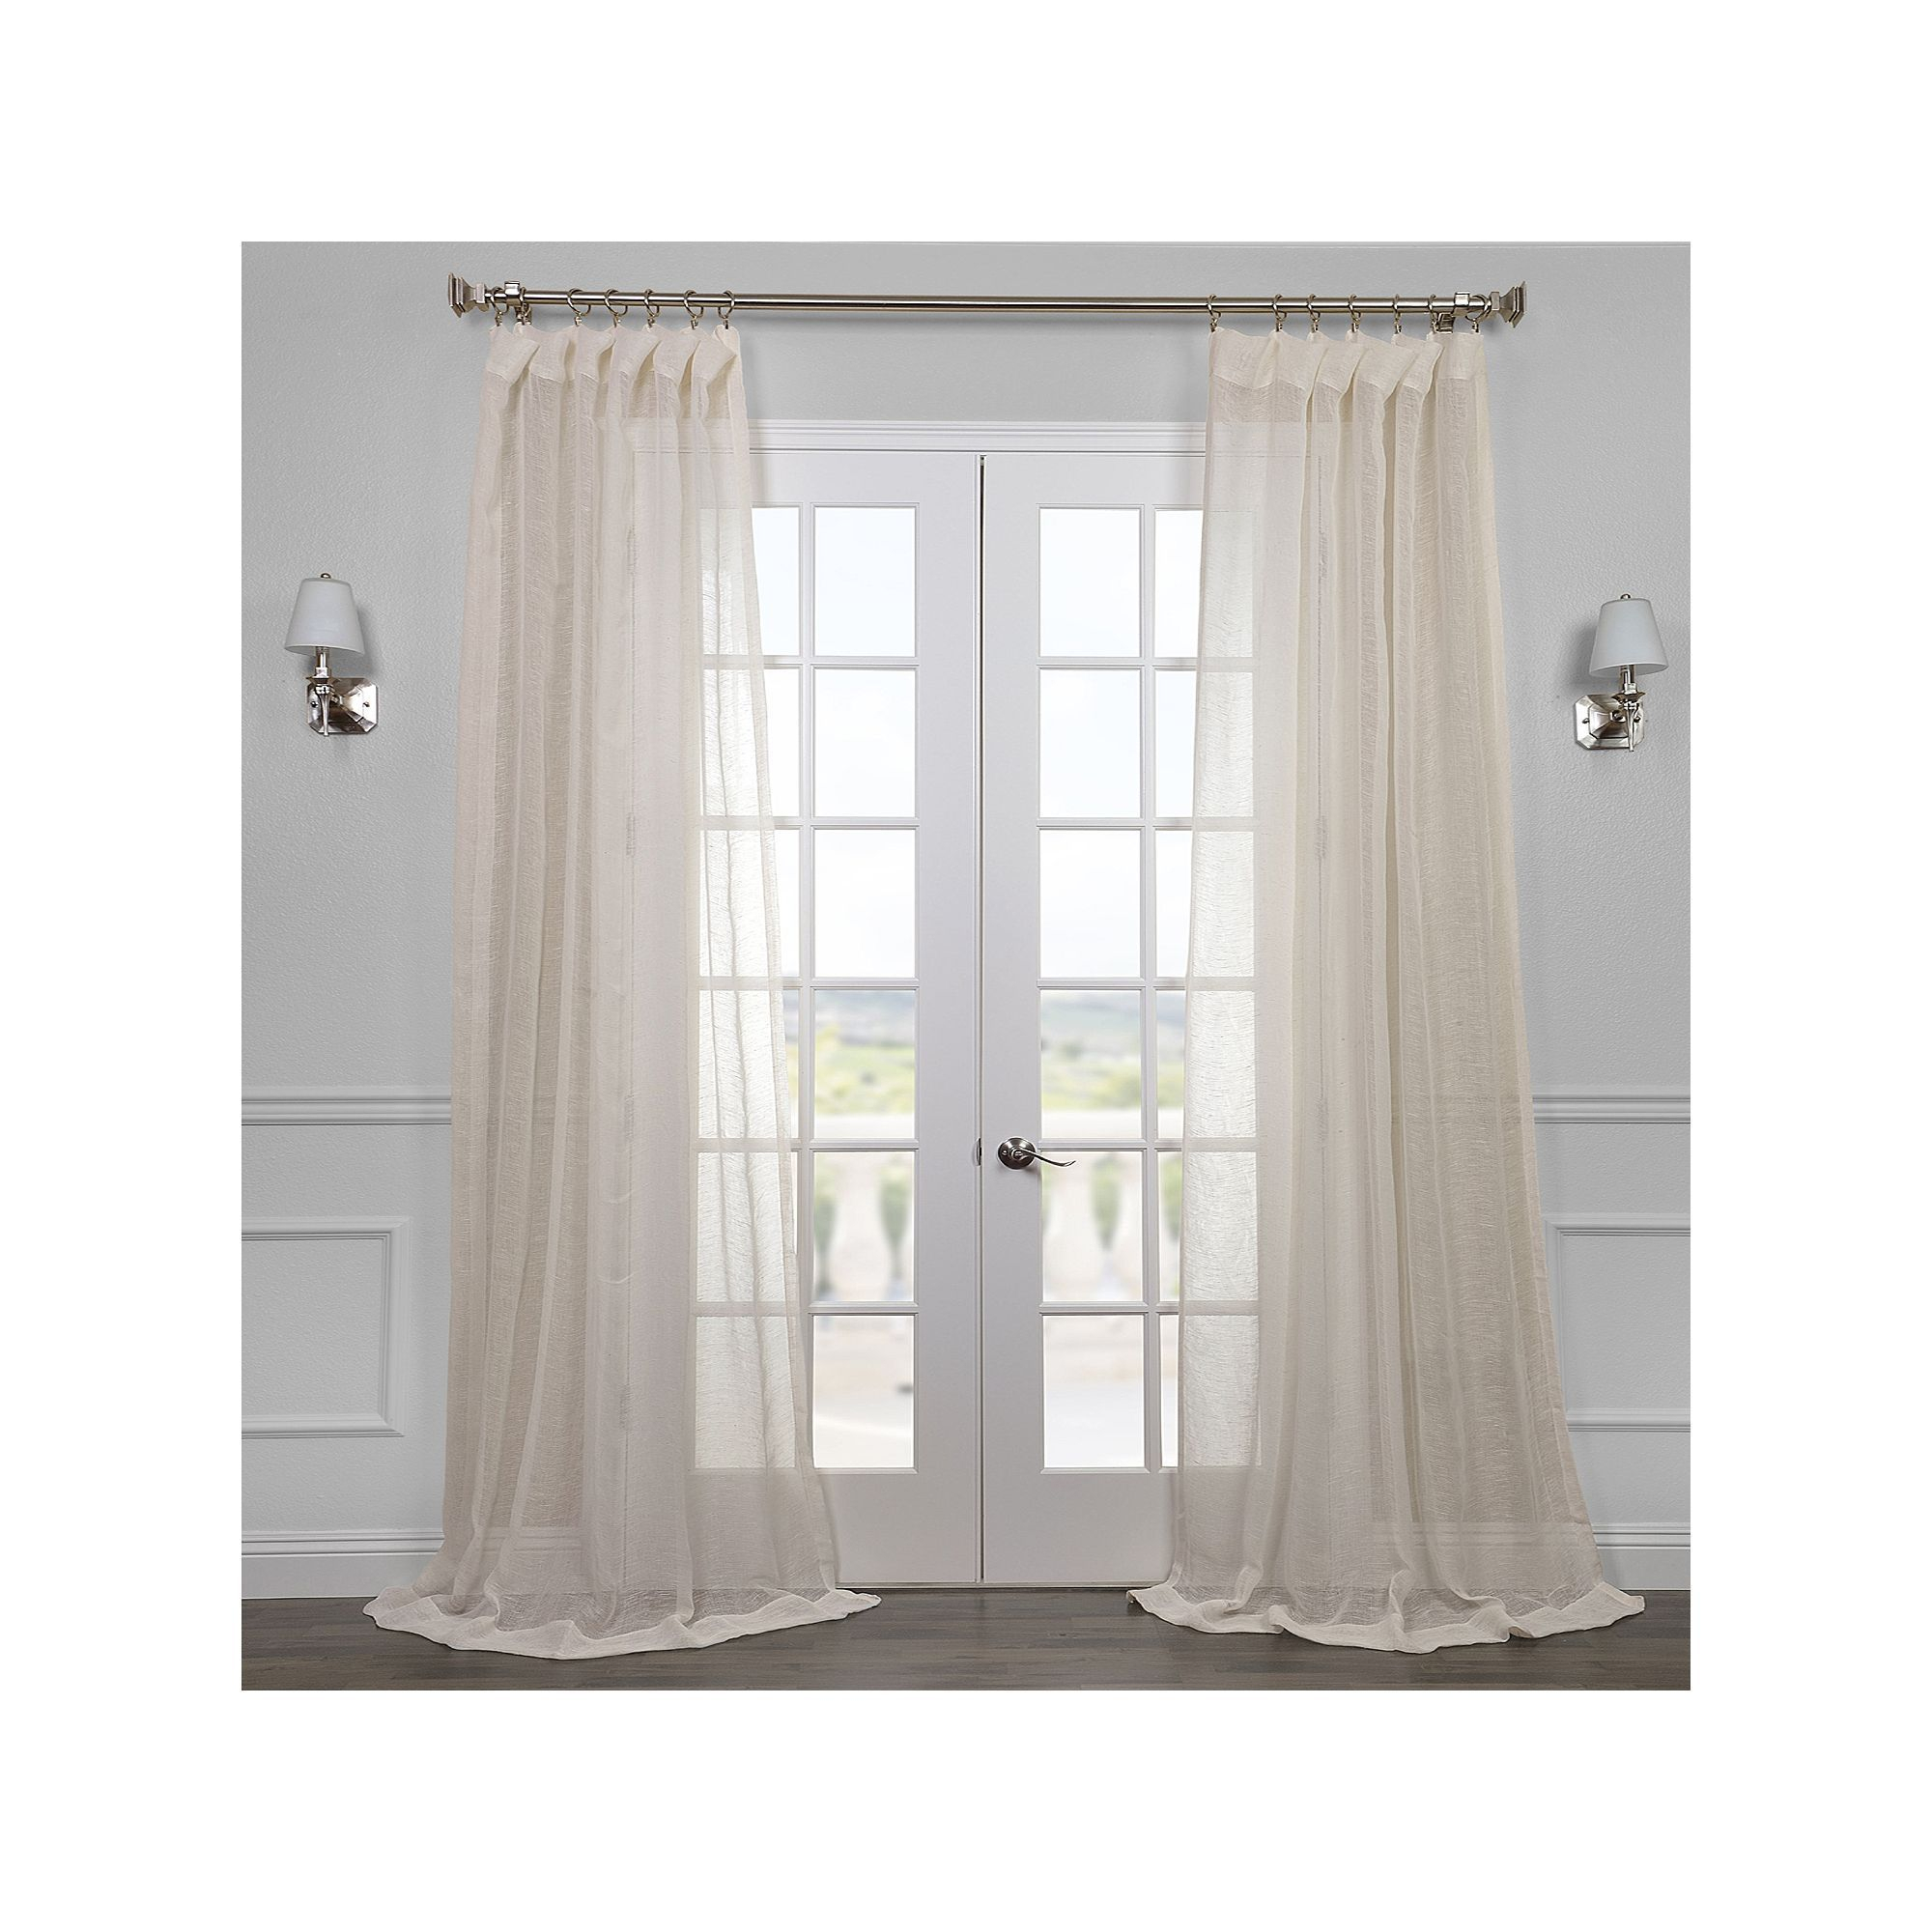 Eff 1 Panel Solid Open Weave Sheer Window Curtain, White For Signature White Double Layer Sheer Curtain Panels (View 3 of 30)